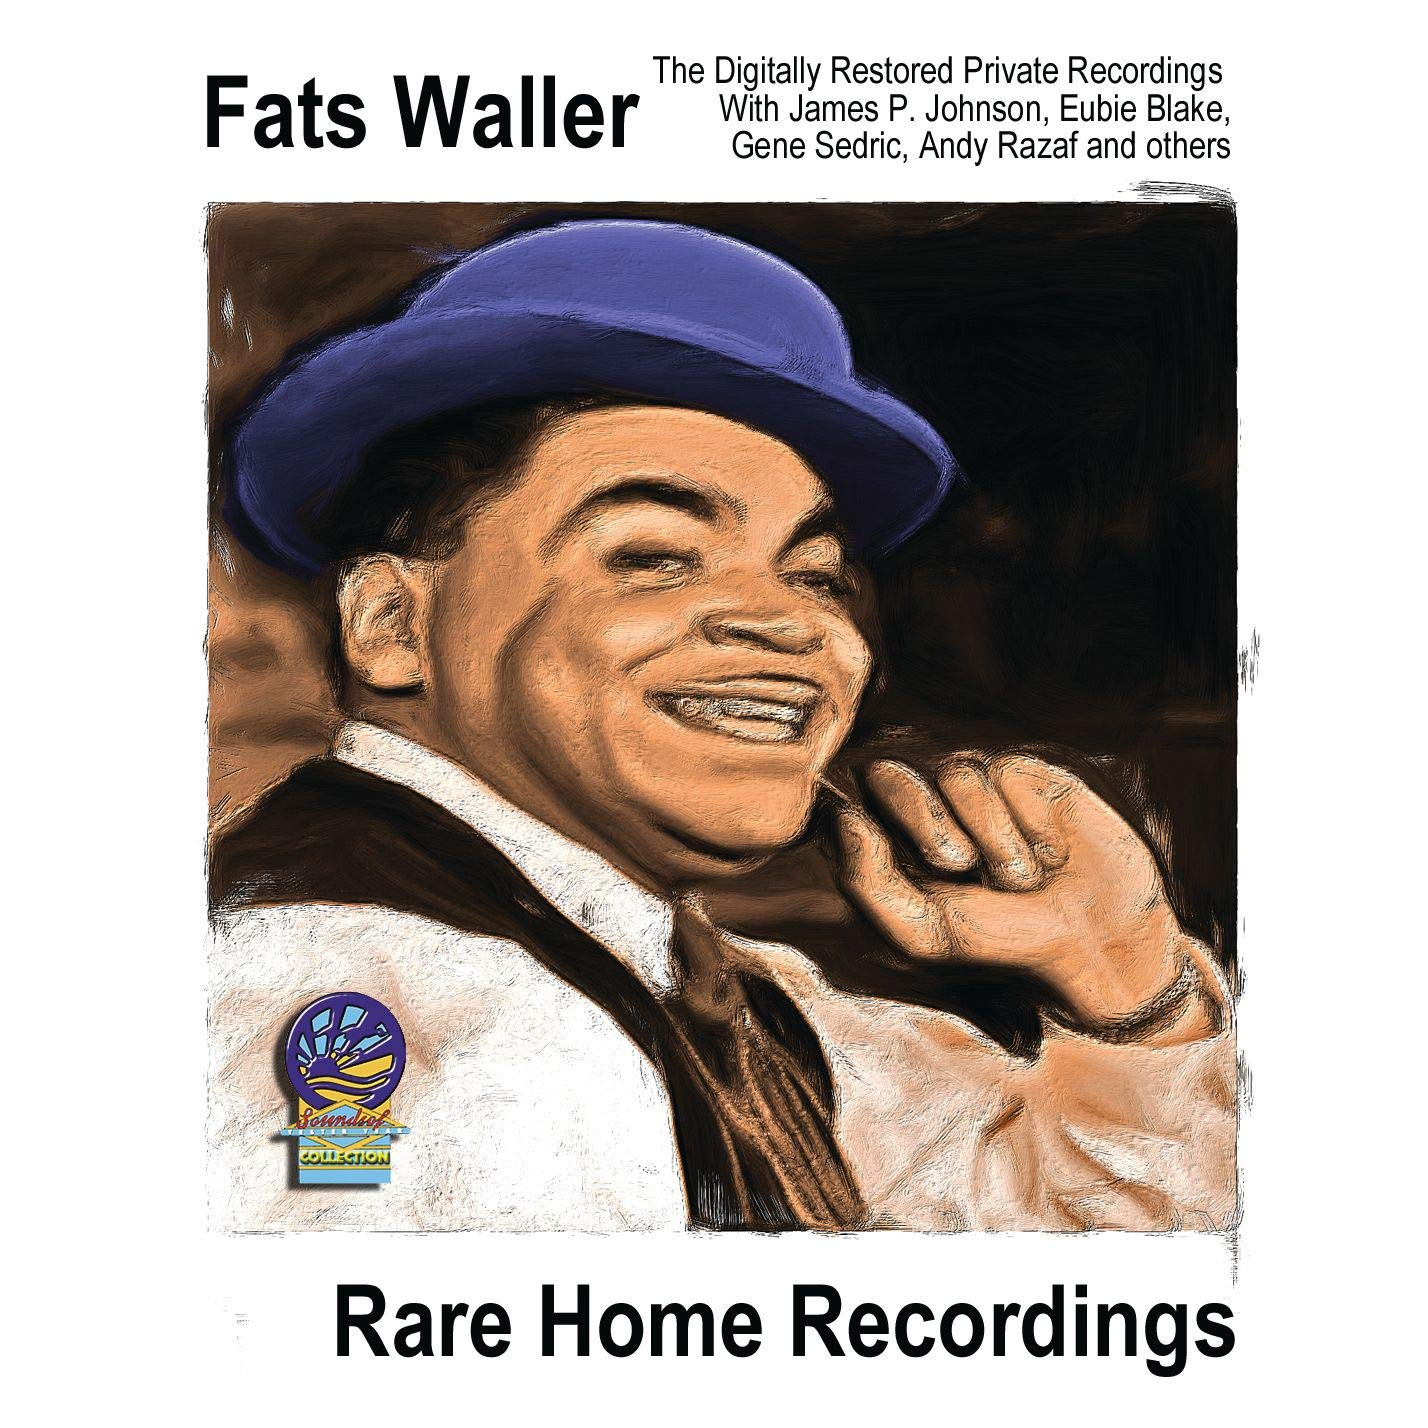 FATS WALLER - Rare Home Recordings cover